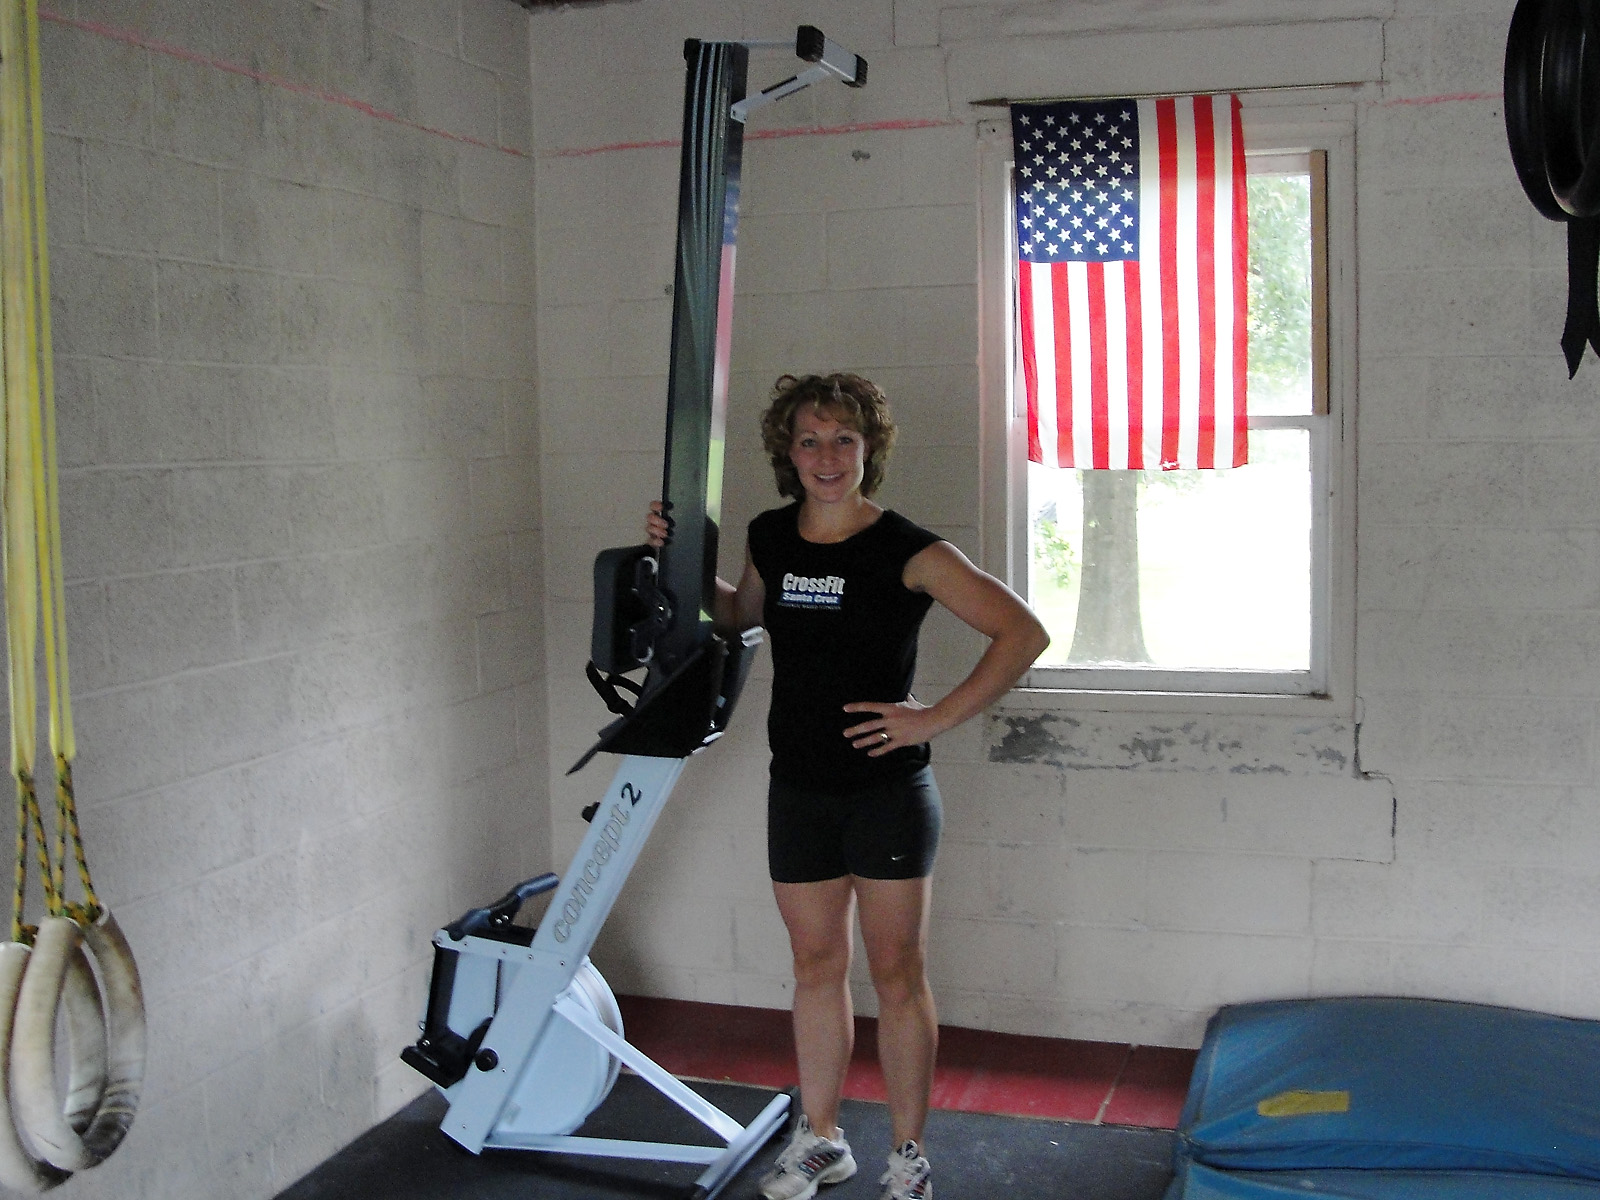 http://games2009.crossfit.com/C2GivesTanyaRower.jpg